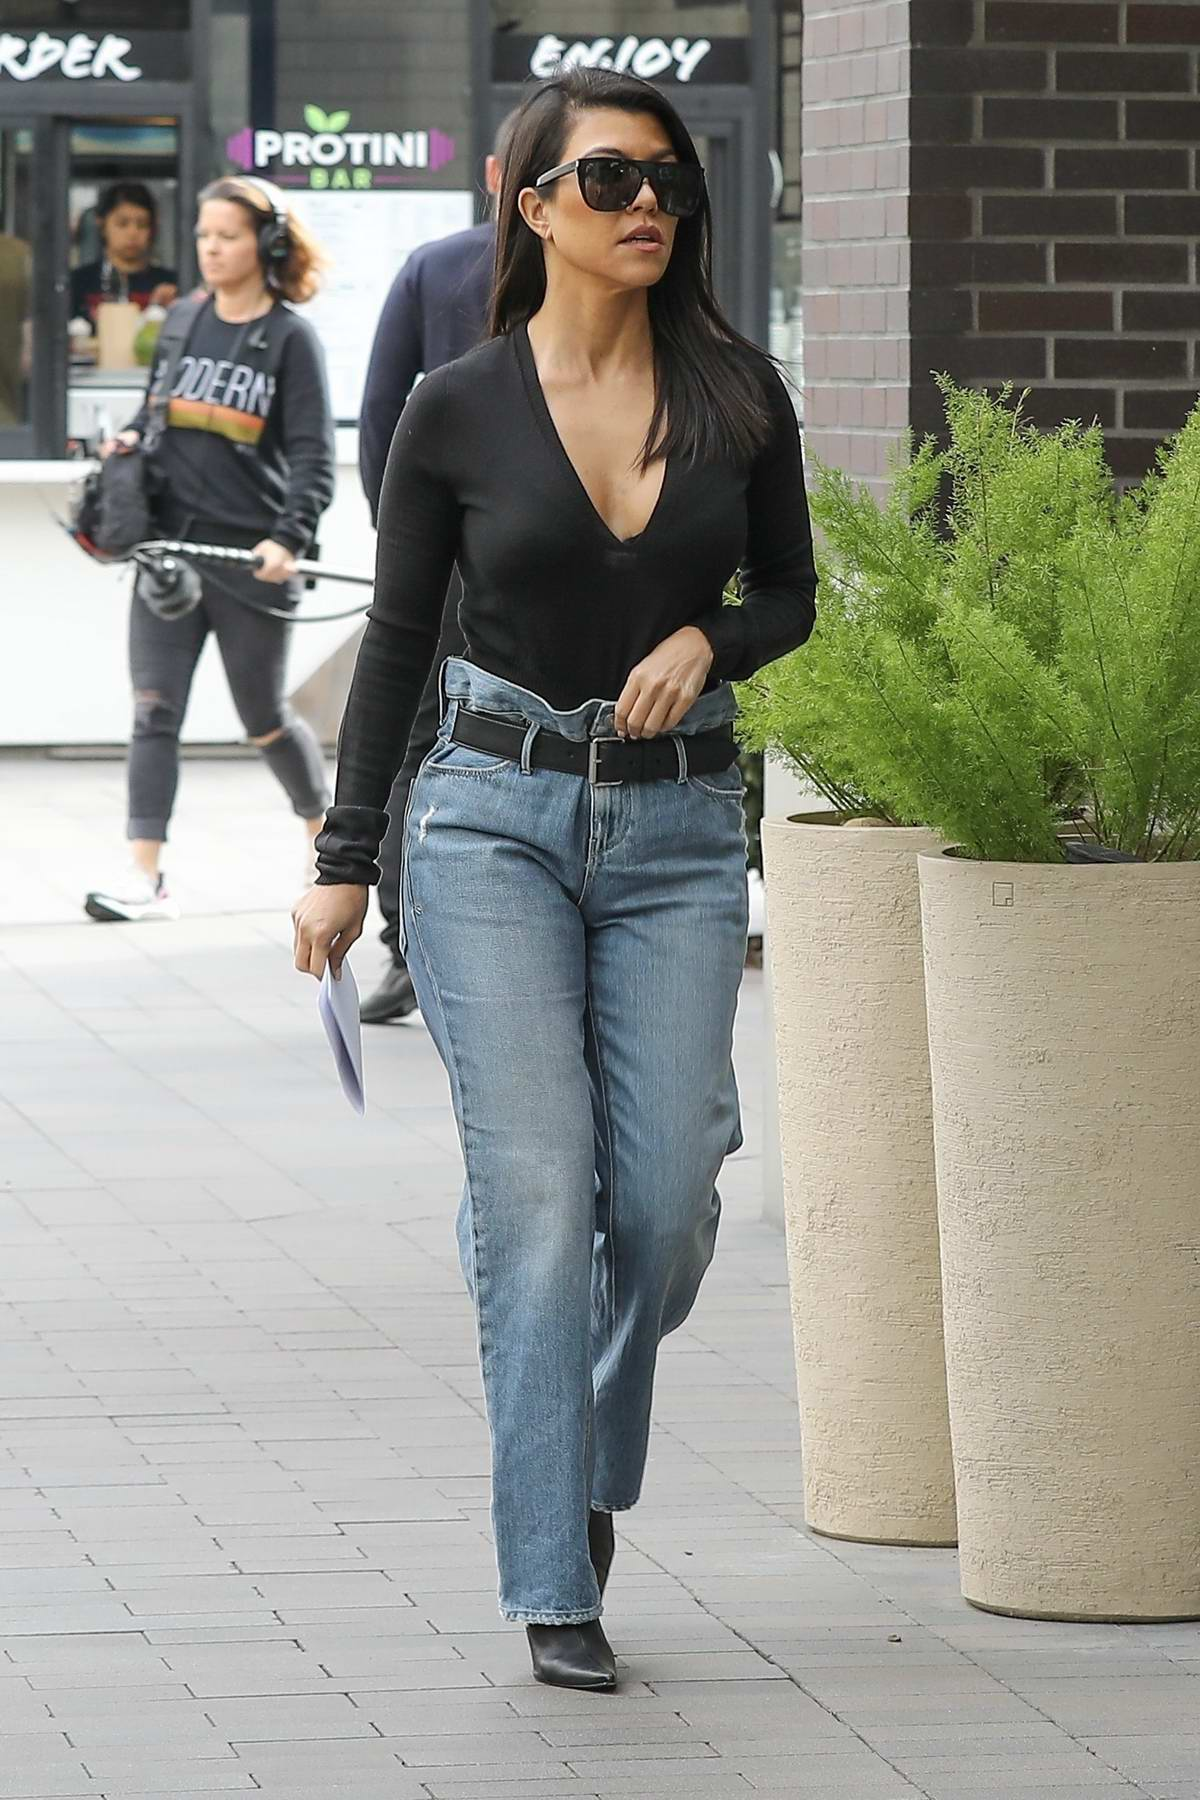 Kourtney Kardashian Slips Into Plunging Black Top For Errands In Woodland Hills California